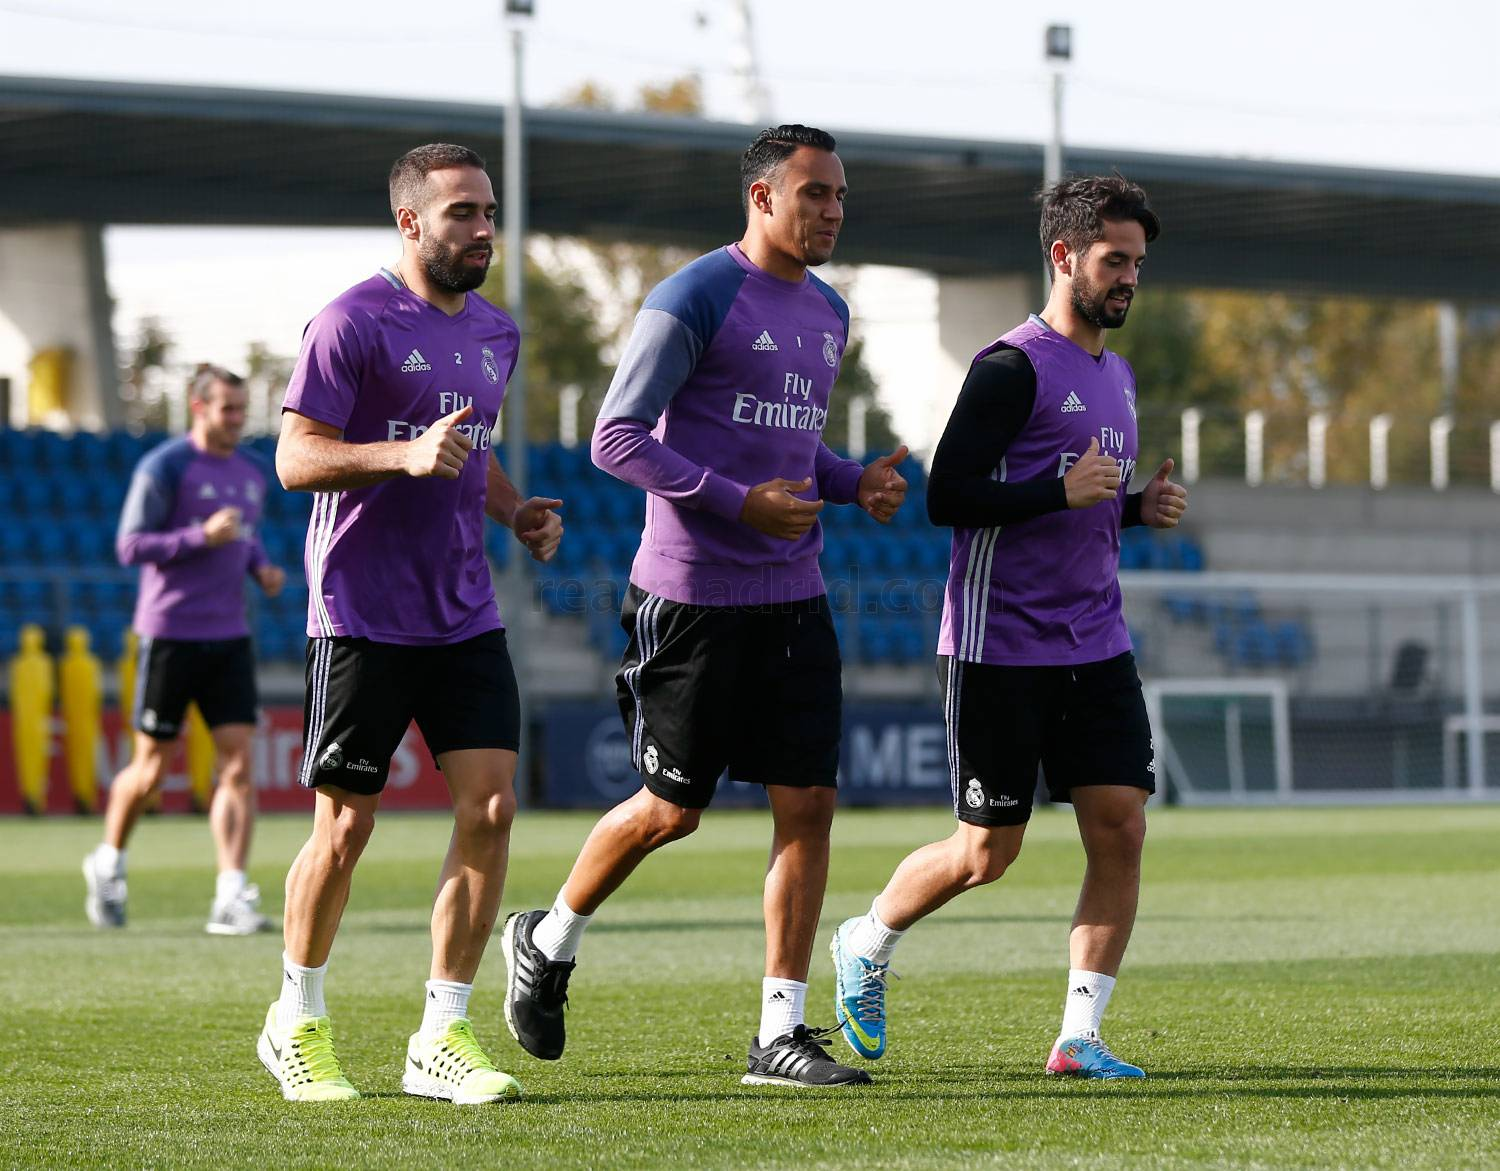 Real Madrid - Entrenamiento del Real Madrid - 16-10-2016